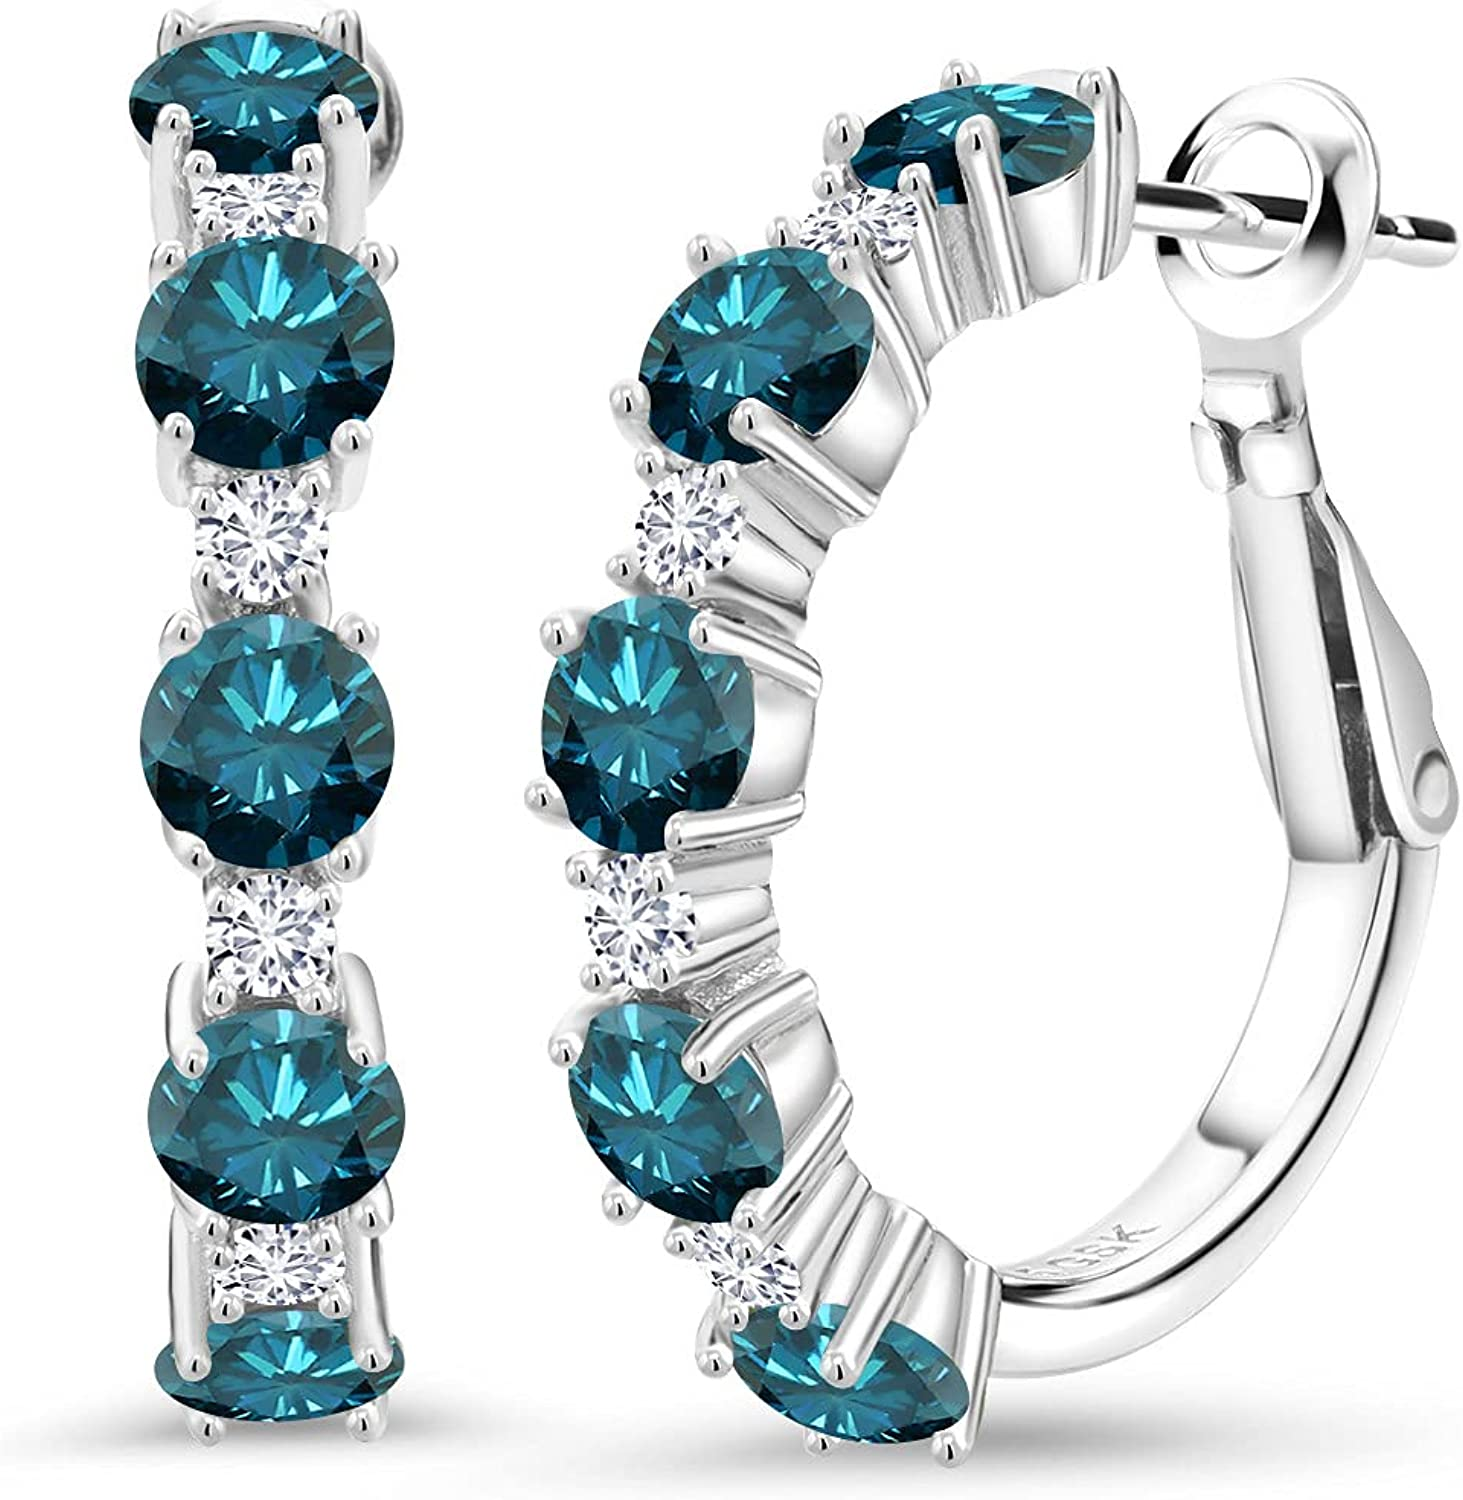 925 Sterling Silver Hoop Earrings Round Gem Popular 5 ☆ popular products Sto Blue Diamond and